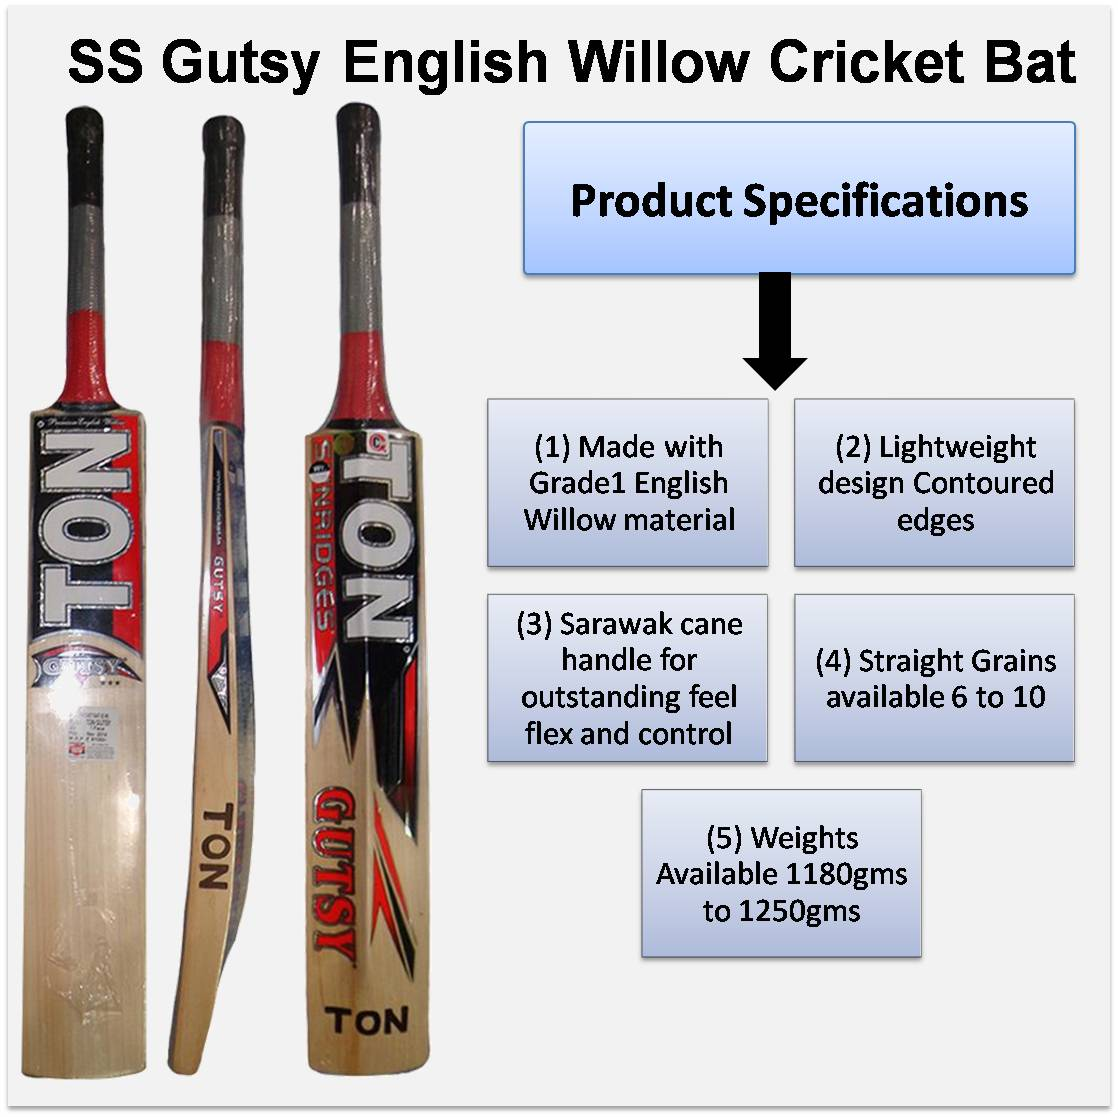 SS Gutsy English Willow Cricket Bat